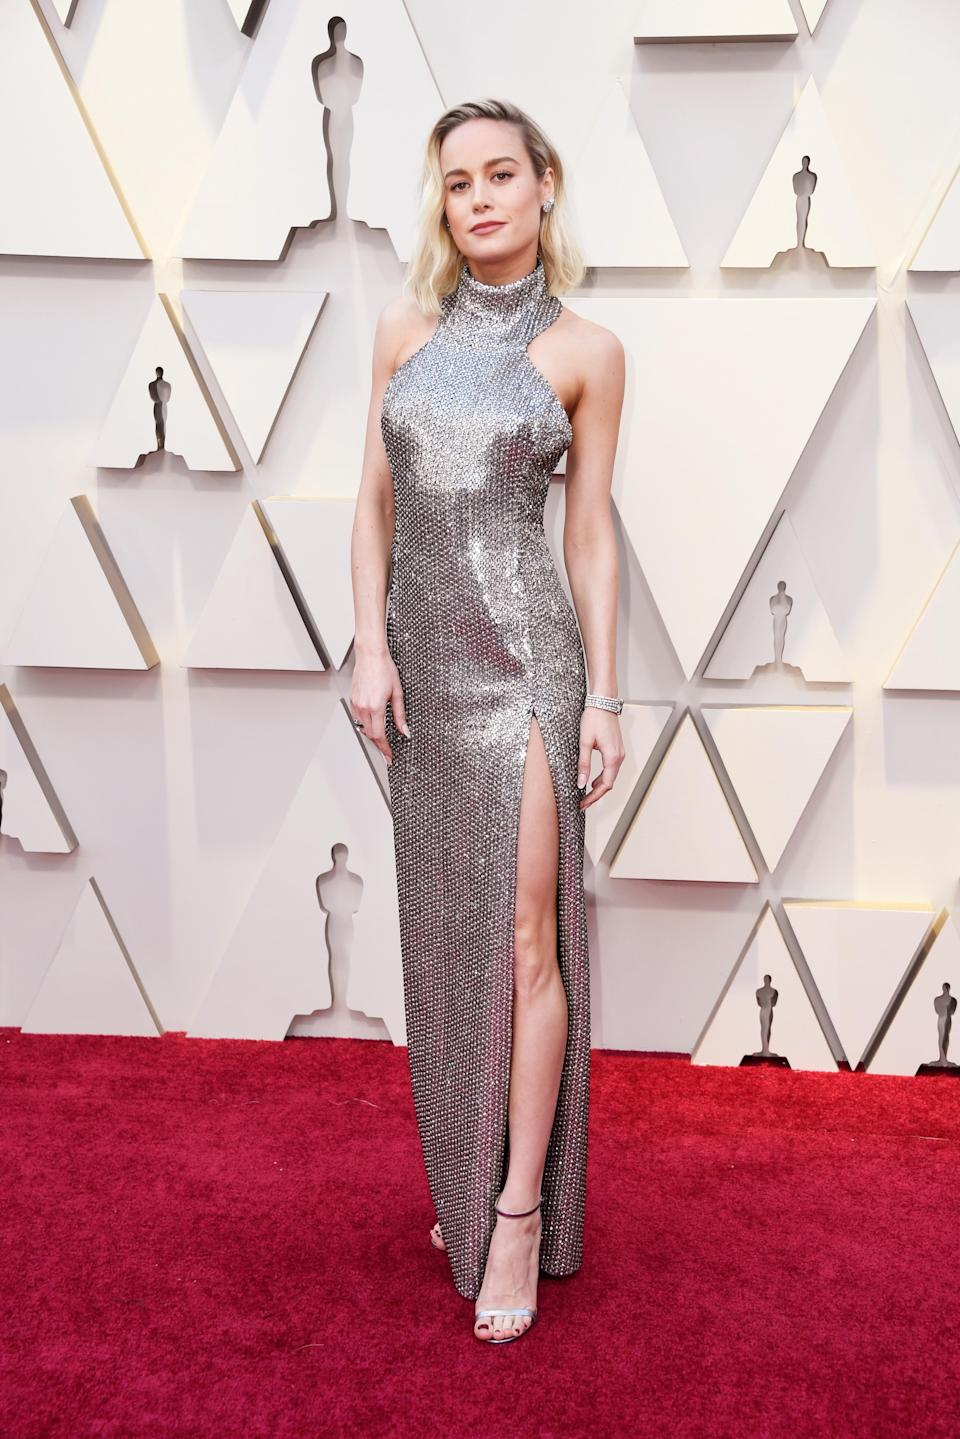 """<p>The """"Captain Marvel"""" star looked out of this world in a silver gown with thigh high slit as she arrived on the red carpet. (Image via Getty Images) </p>"""